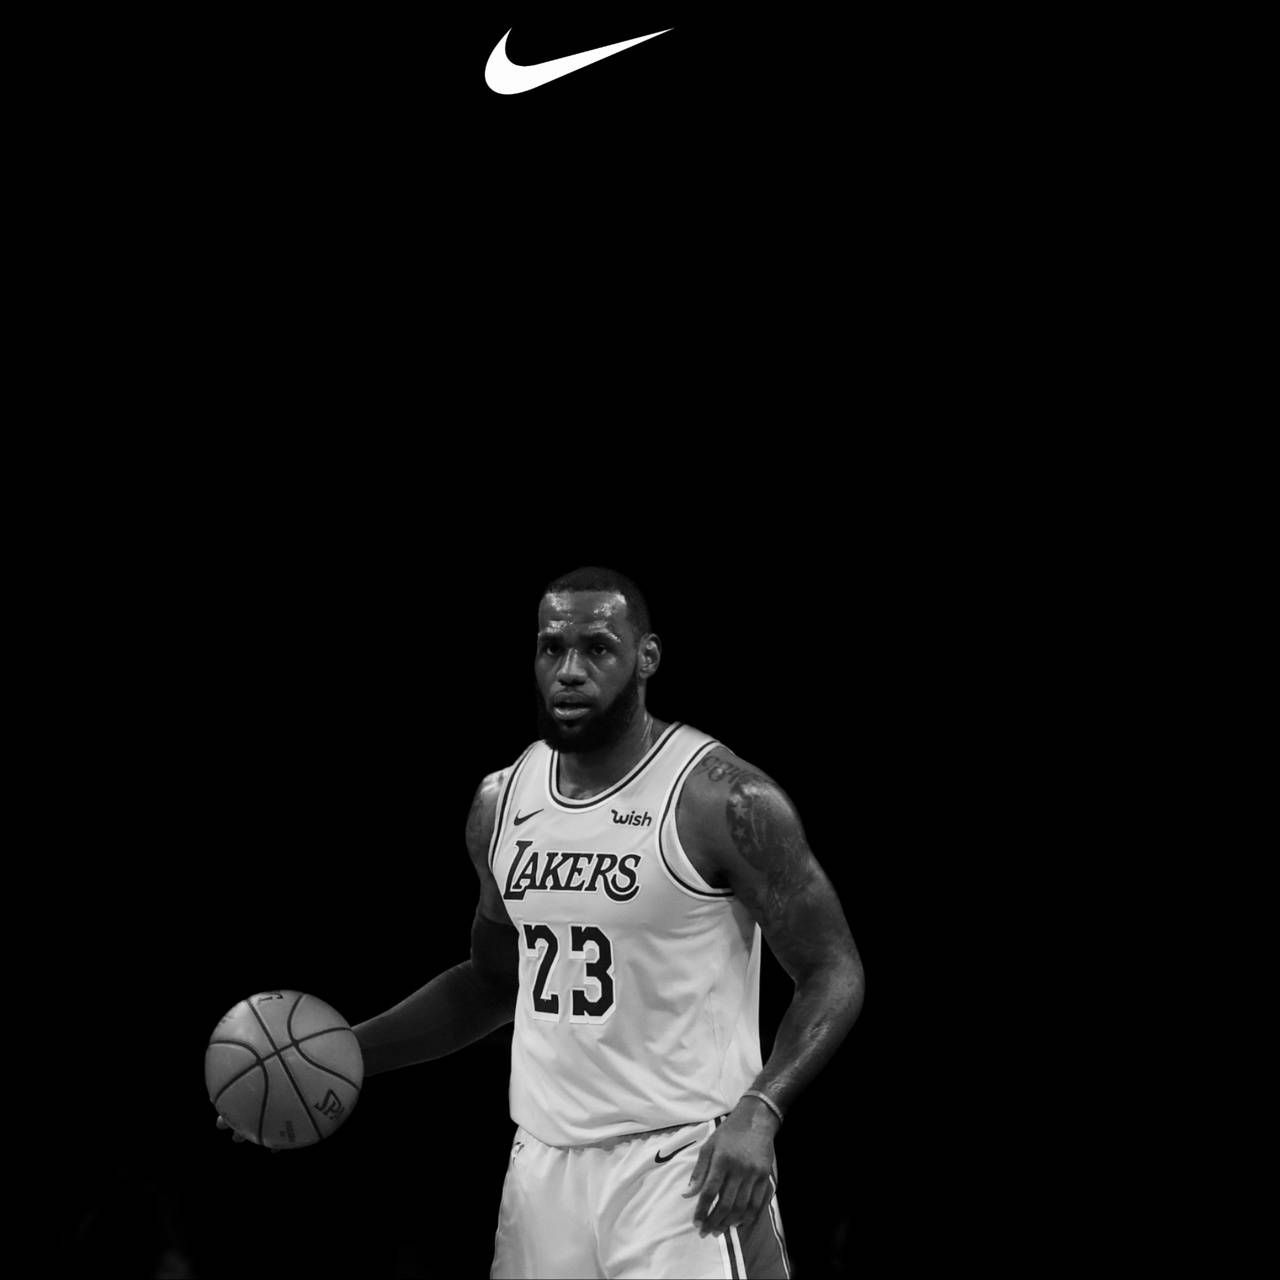 Lebron James Logo Black And White Wallpapers Wallpaper Cave